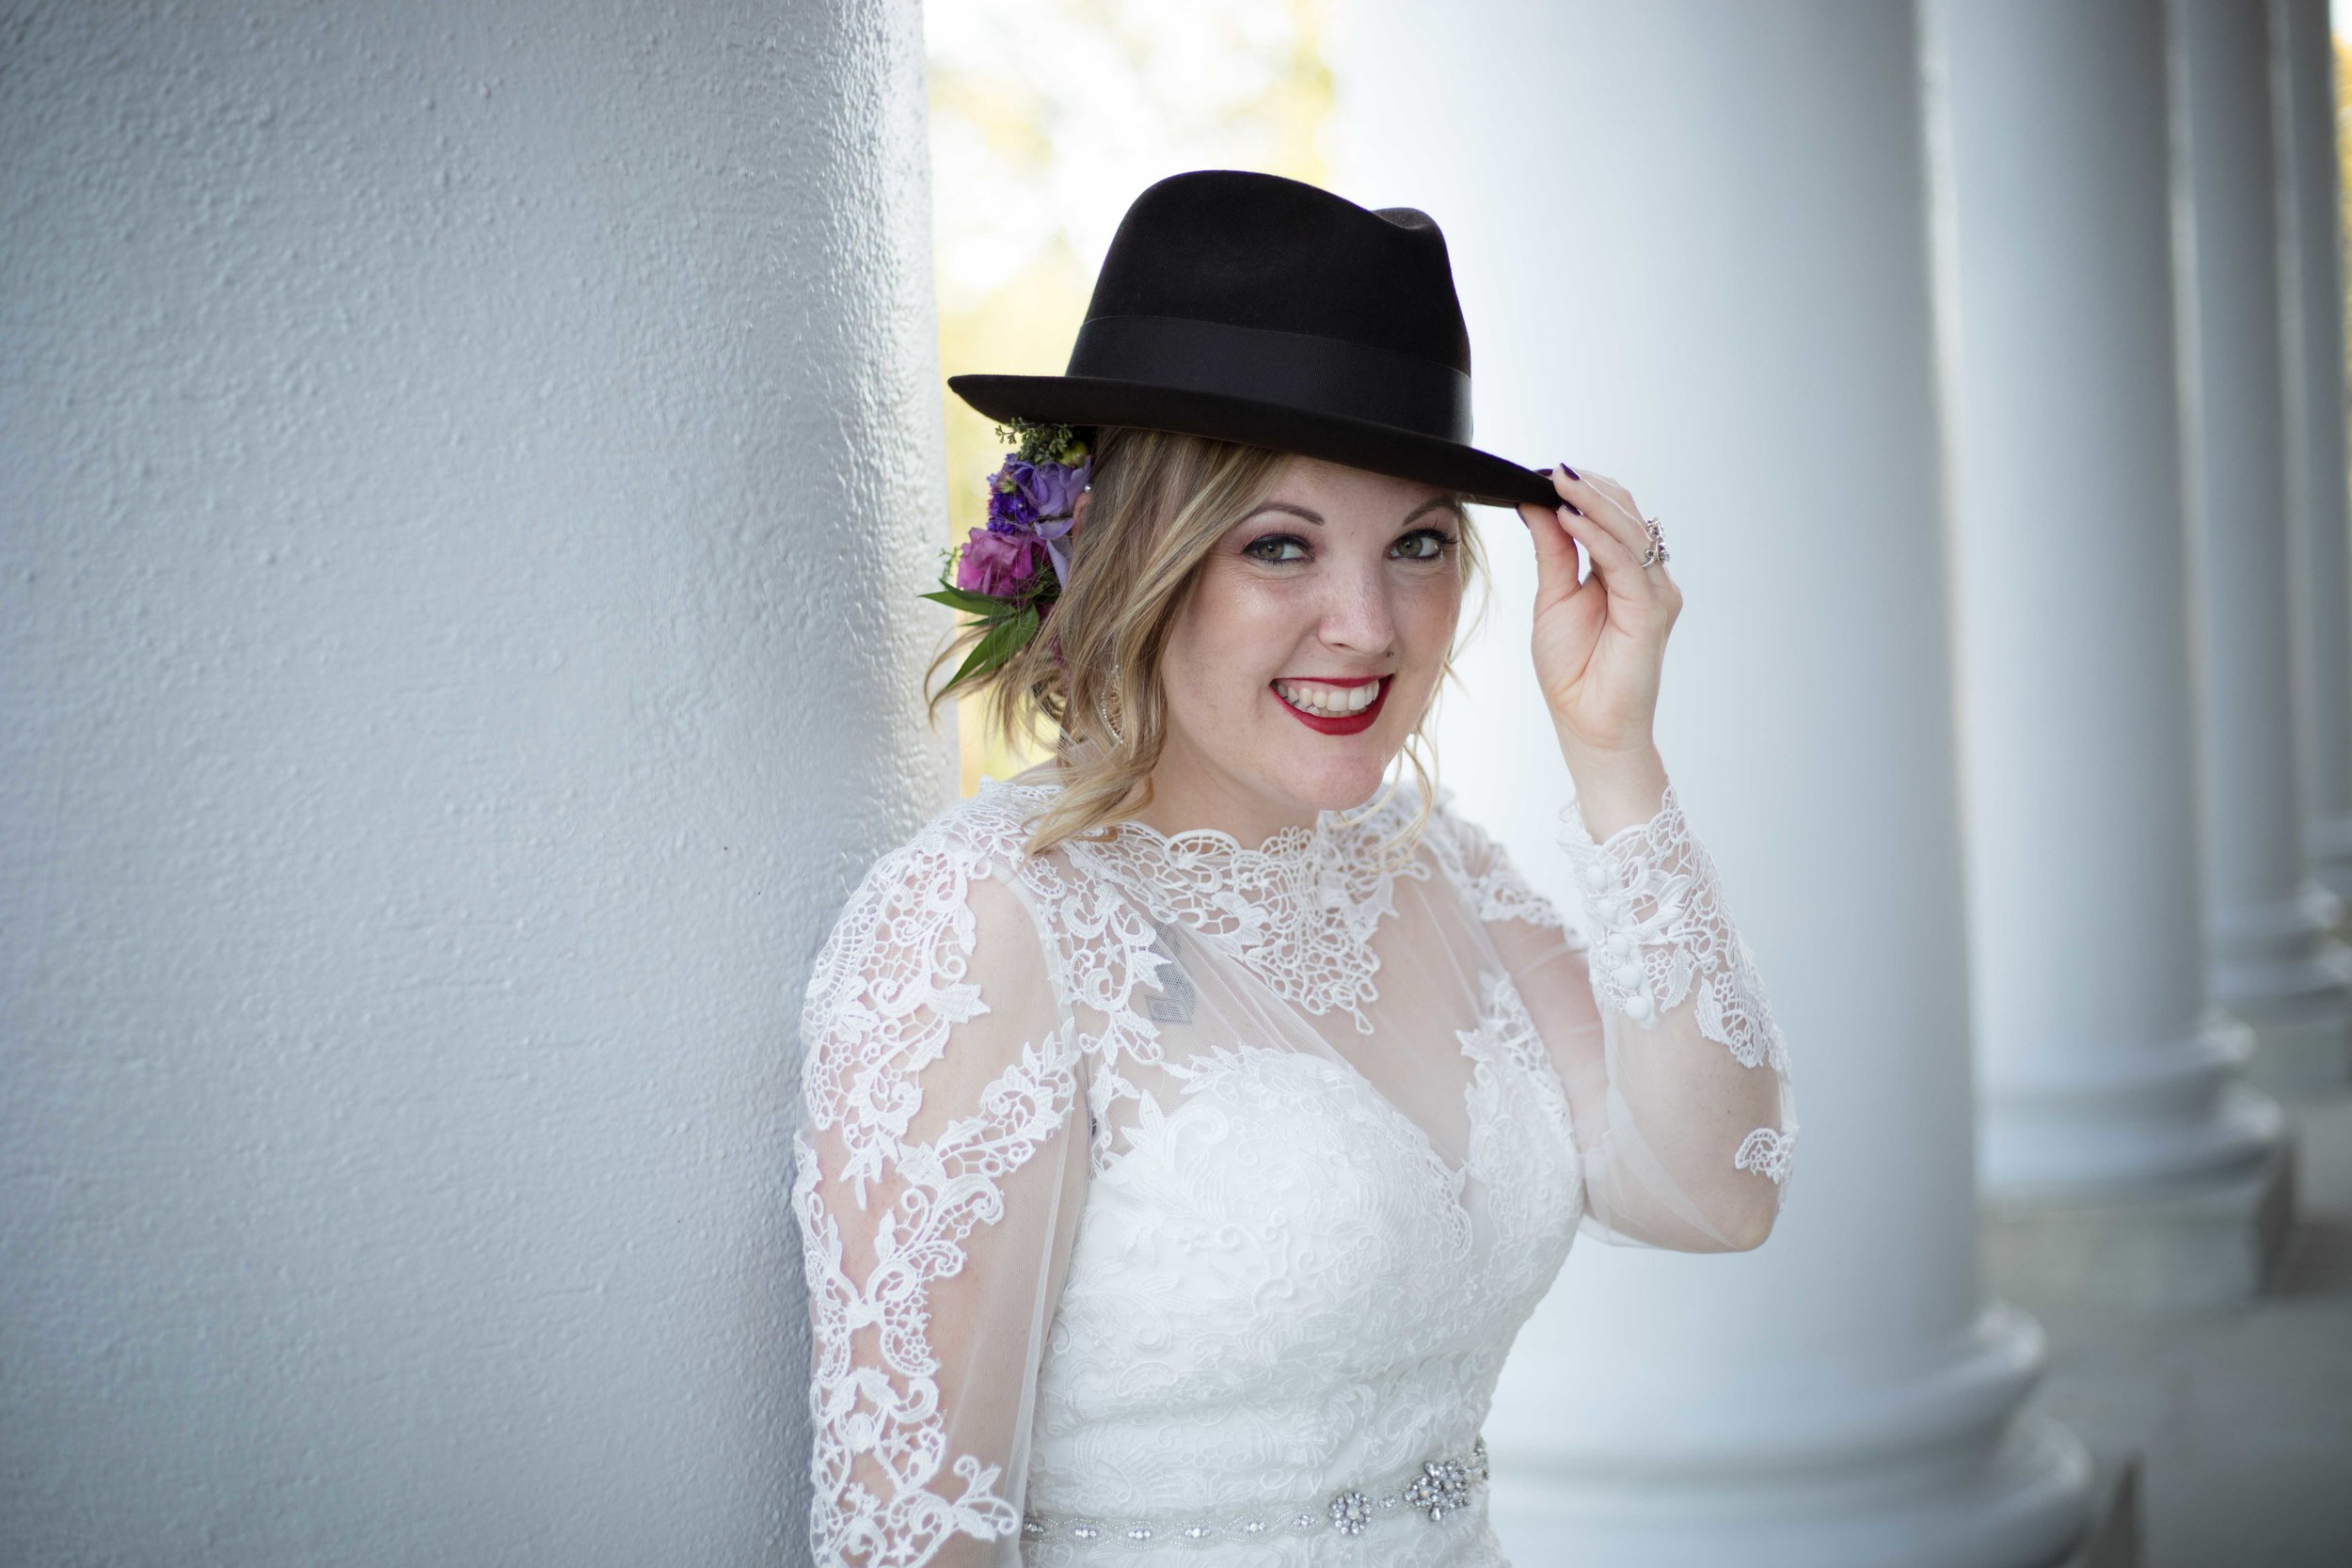 The bride sporting the grooms hat at heritage hall on western michigan university's campus